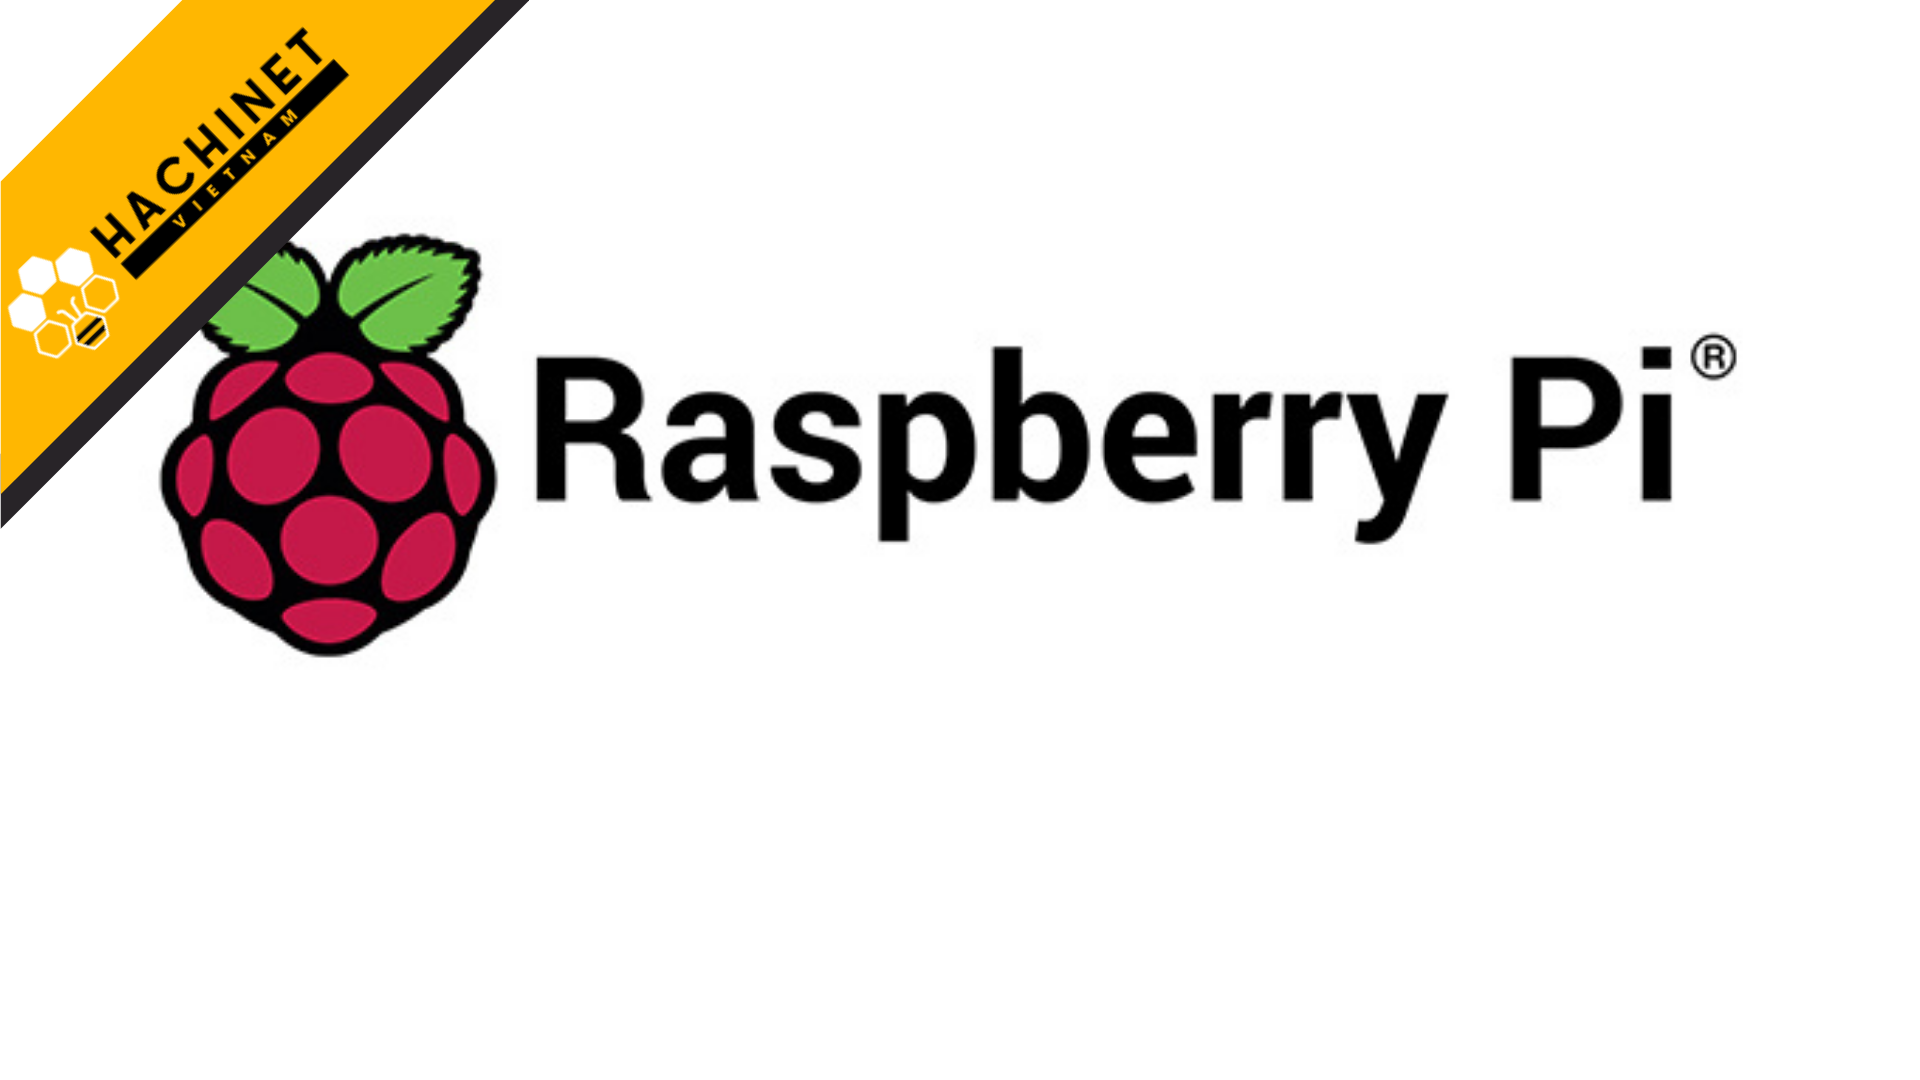 HOW TO LEARN RASPBERRY PI?